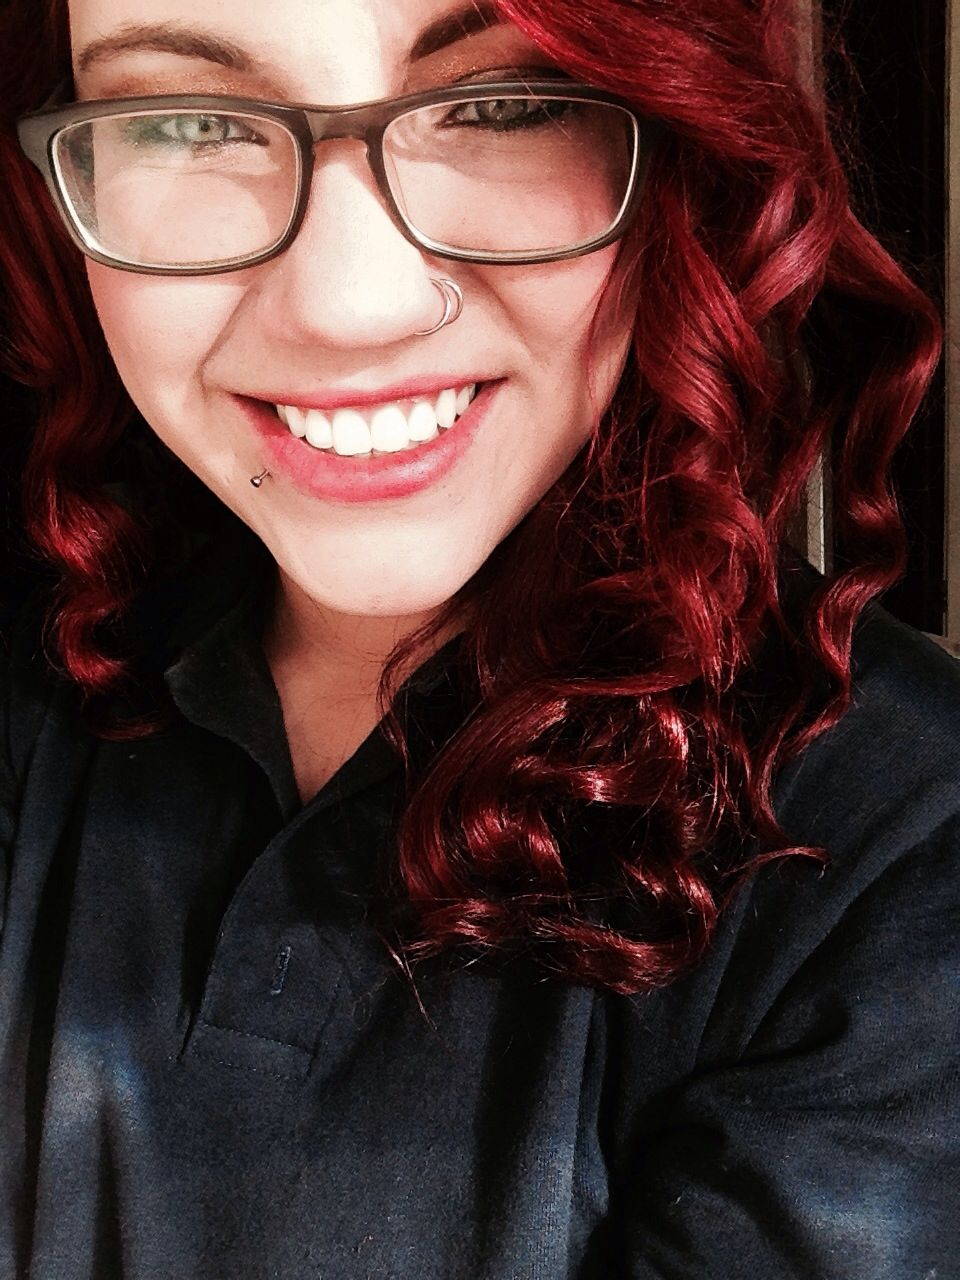 Lip ring Double nose piercing Sears Red hair  ink  Pinterest